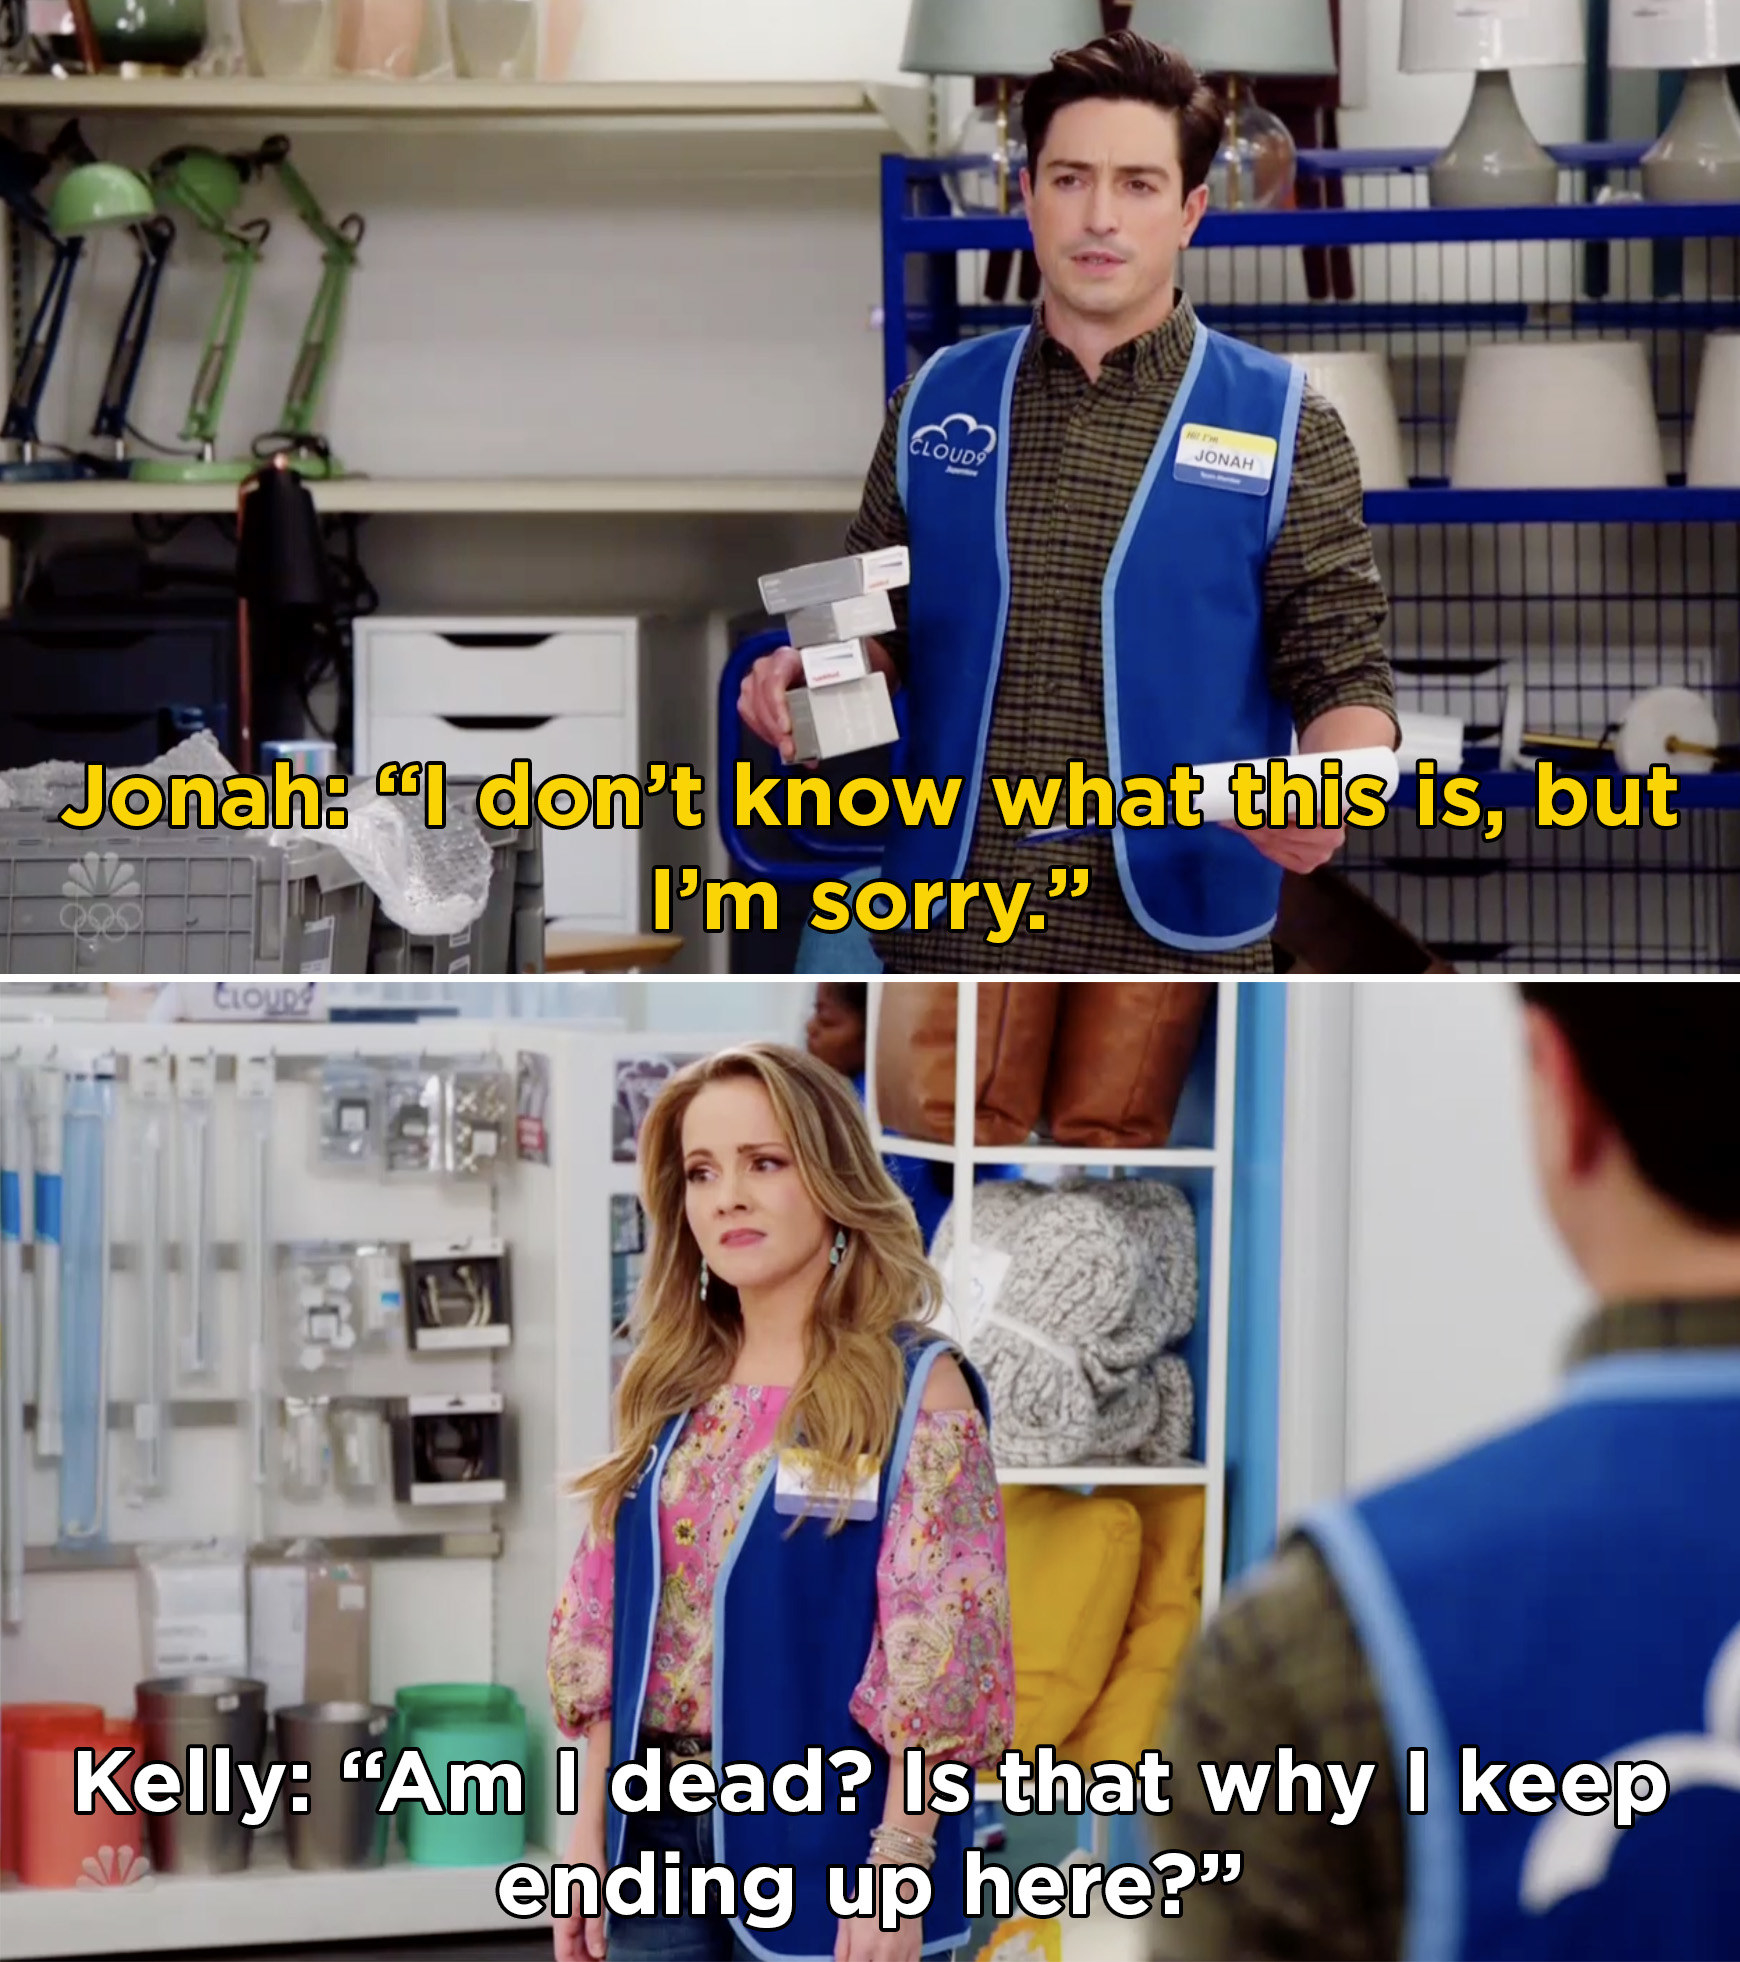 """Jonah saying, """"I don't know what this is, but I'm sorry"""" and Kerry responding, """"Am I dead? Is that why I keep ending up here?"""""""